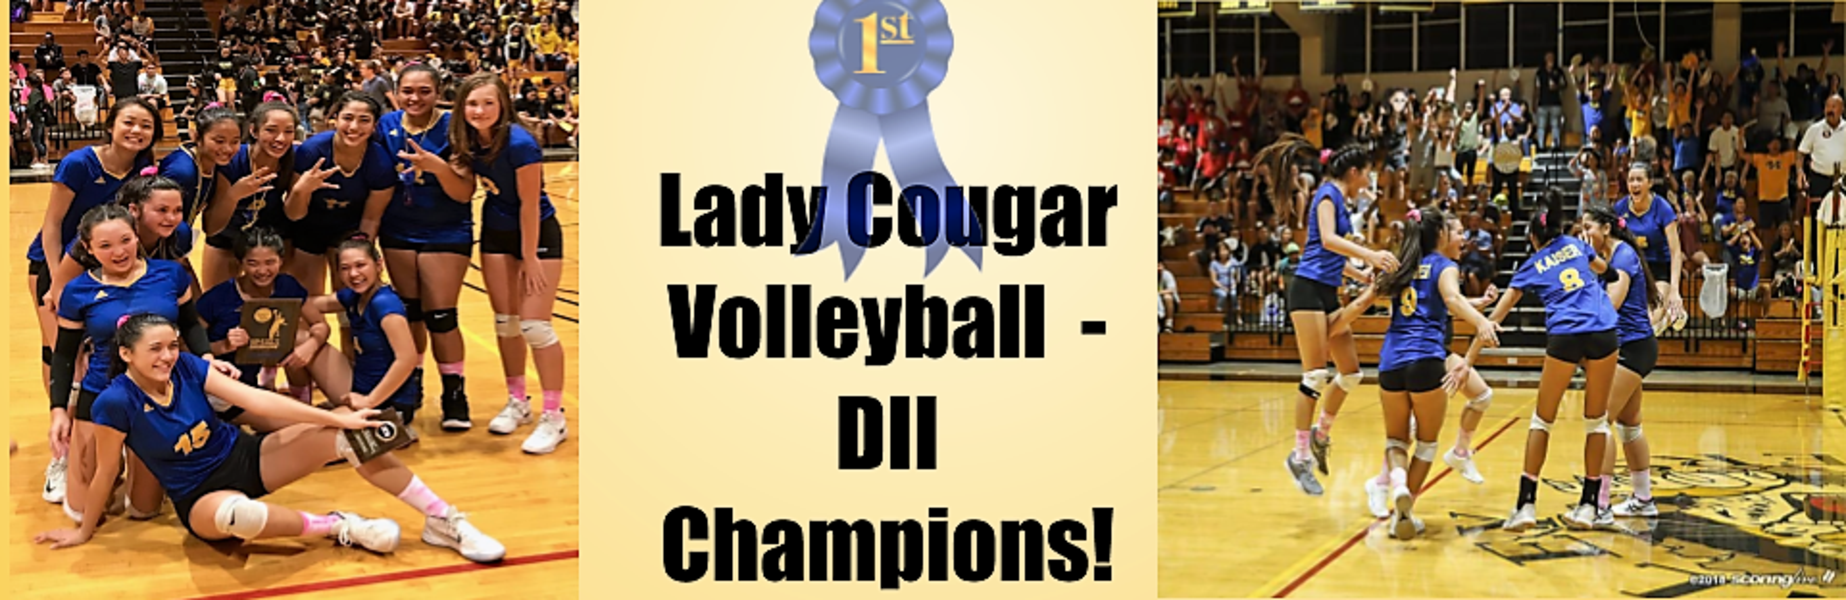 Lady Cougar Volleyball champions